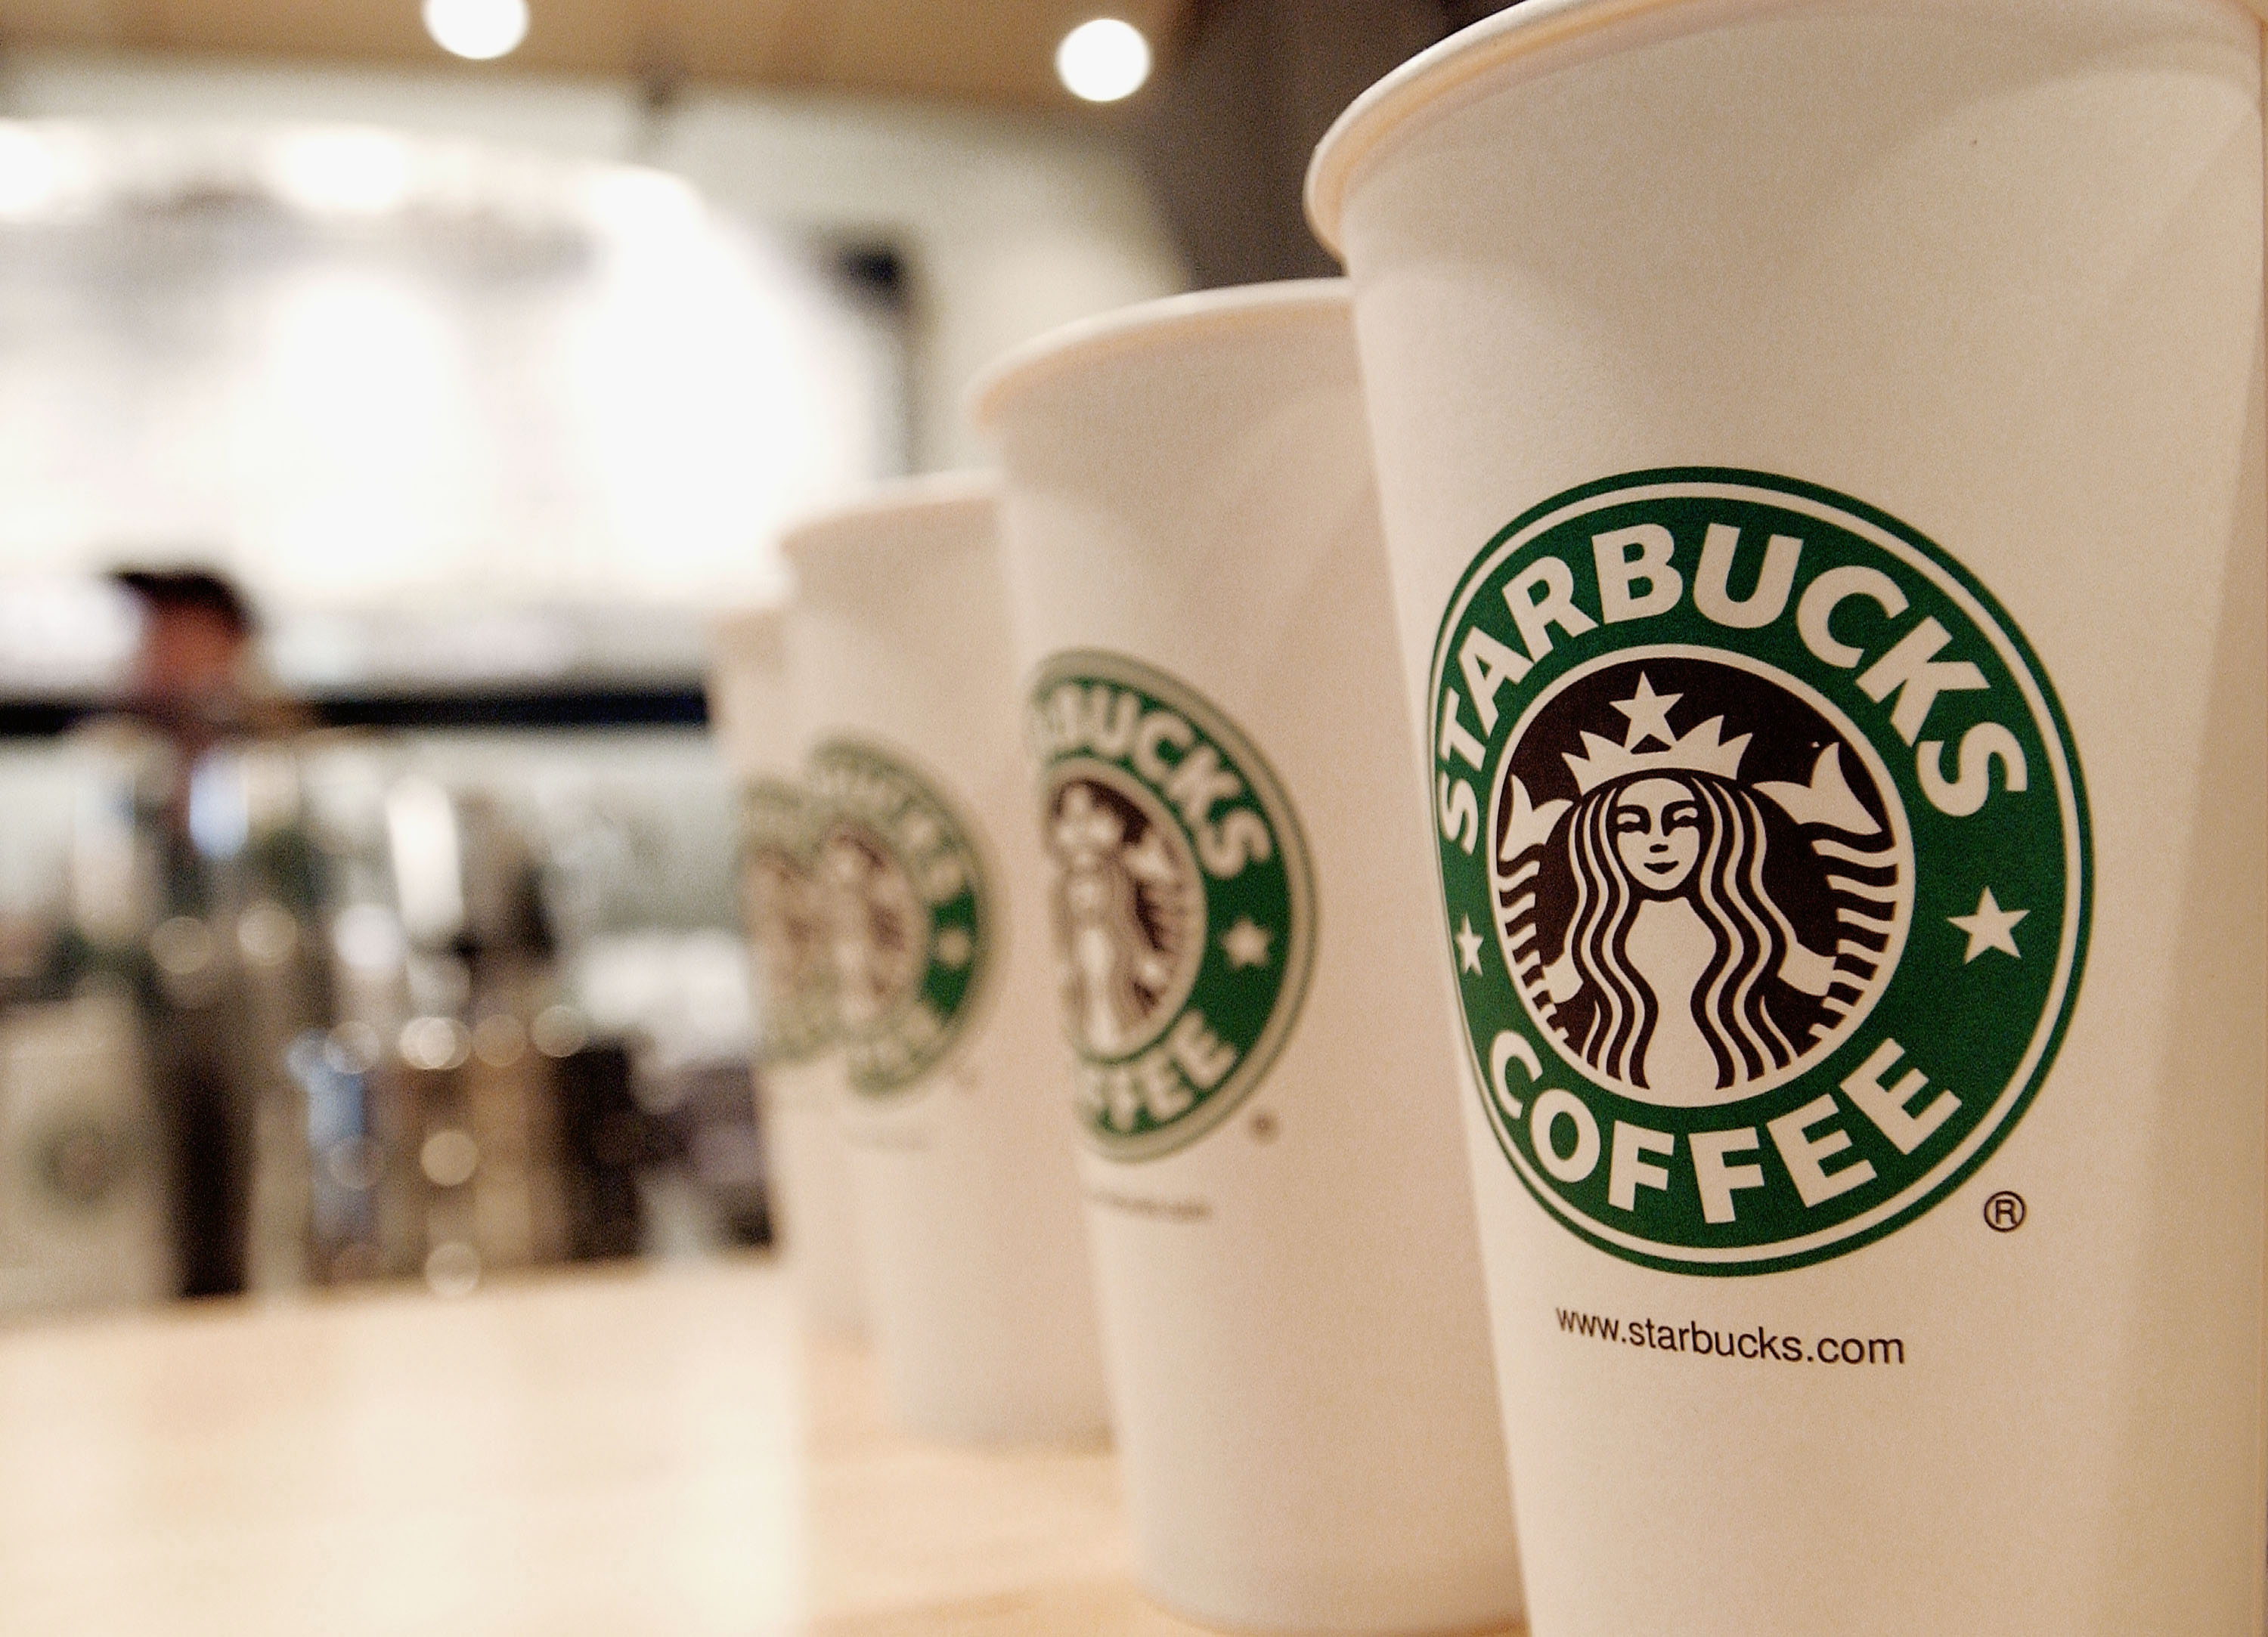 Starbucks launched a new documentary series and it's giving us major feels